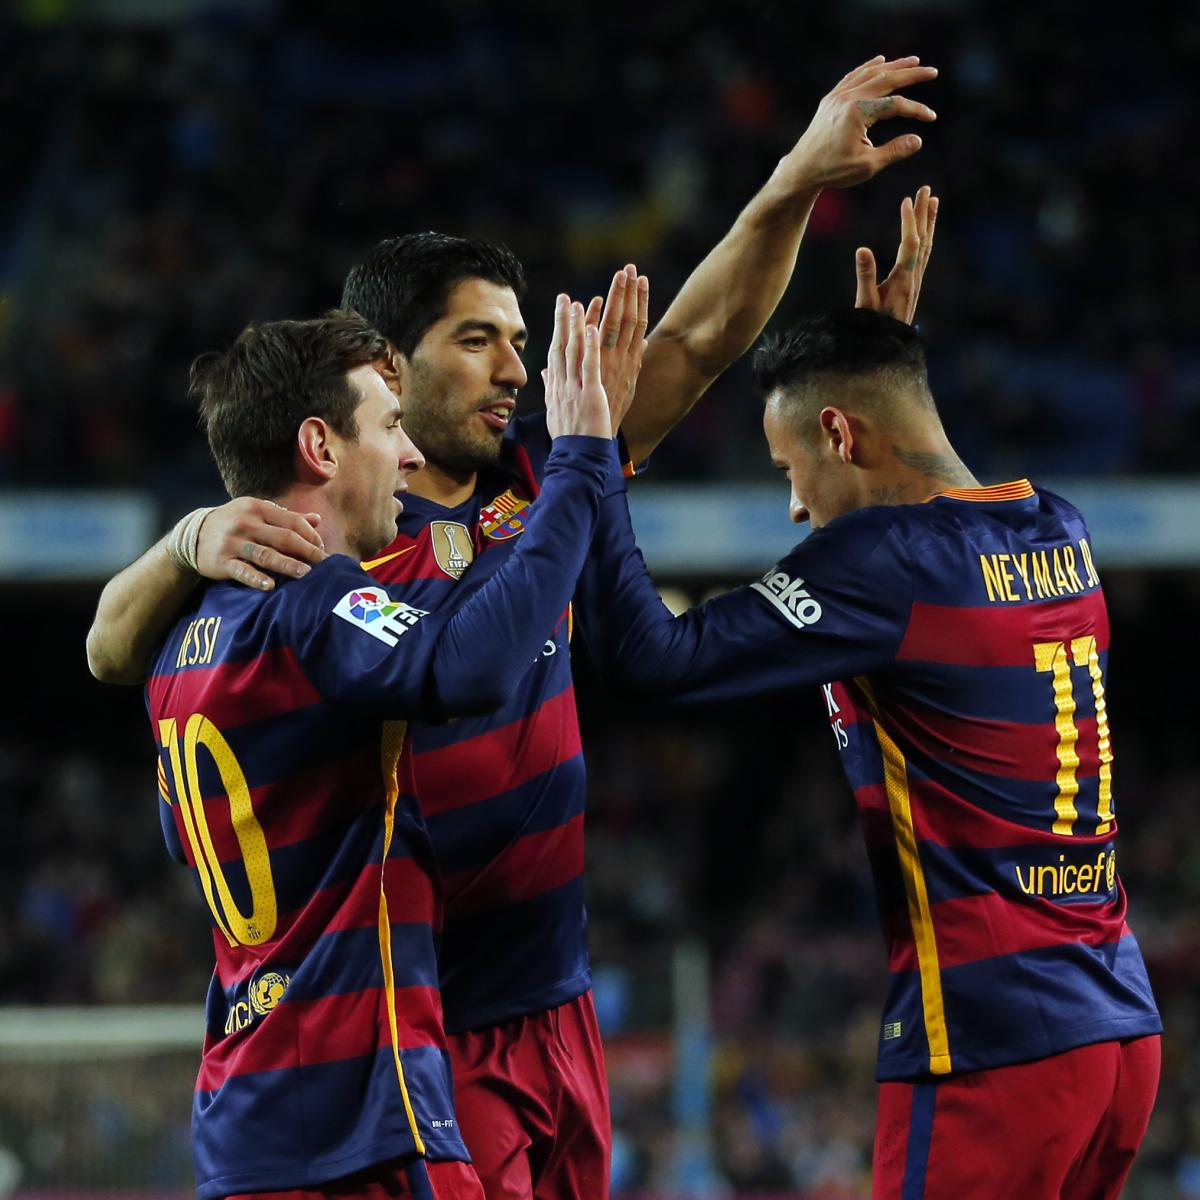 Barcelona Vs Celta Vigo In Youtube: Lionel Messi, Luis Suarez Penalty Revelation Made By